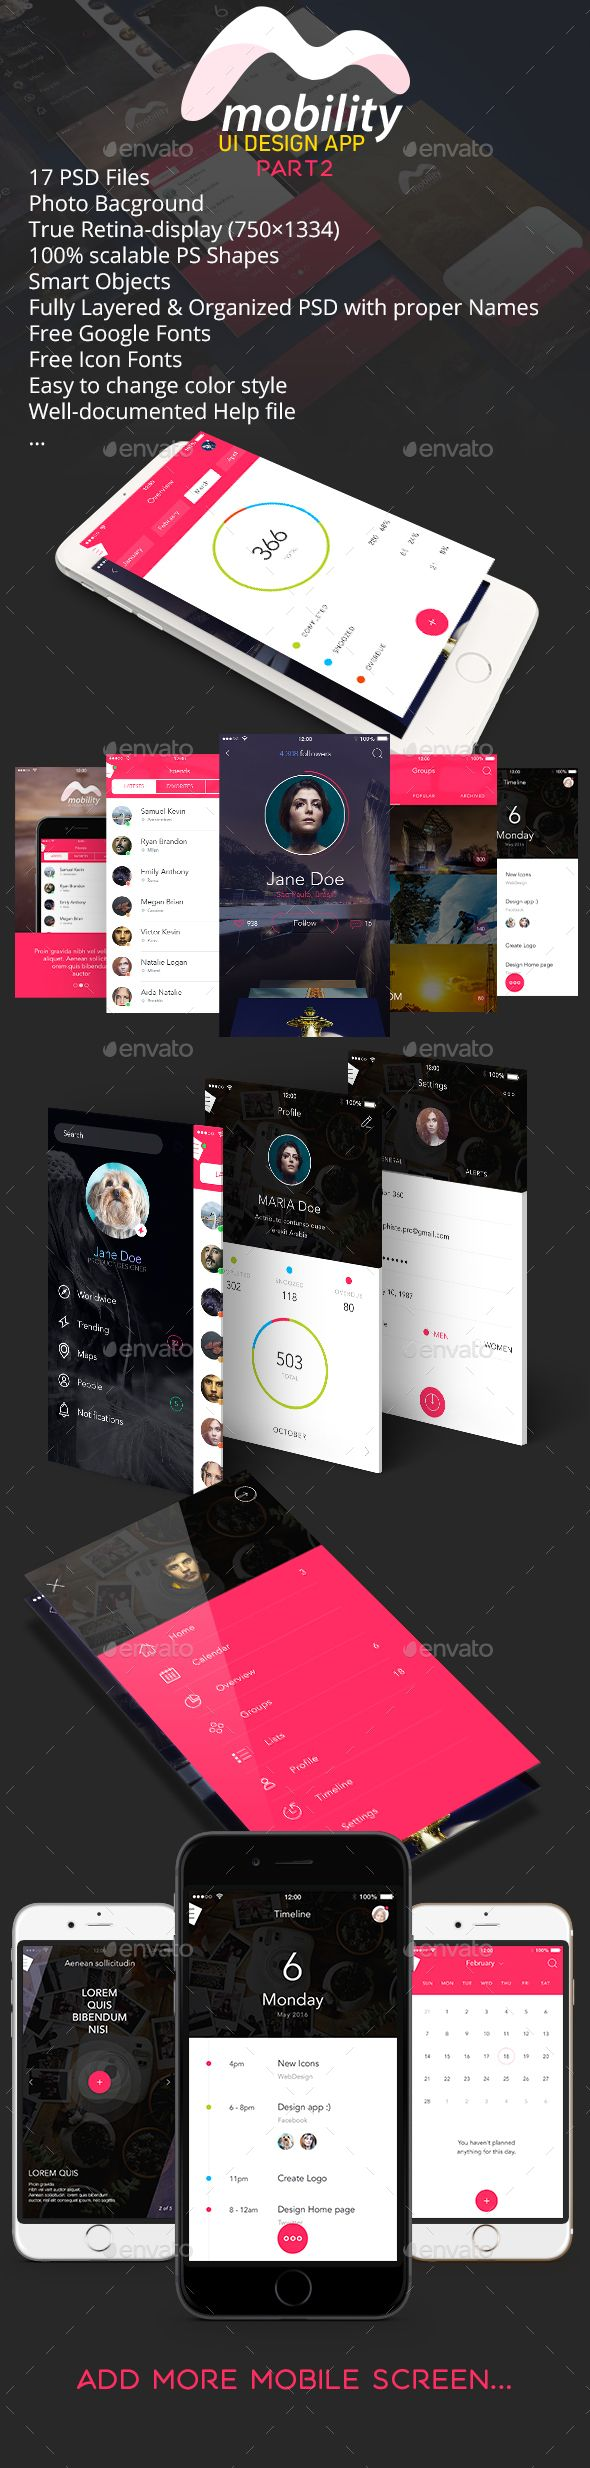 OS9 / Mobility UI Kit Template PSD. Download here: http://graphicriver.net/item/os9-mobility-ui-kit-part2/14844699?ref=ksioks